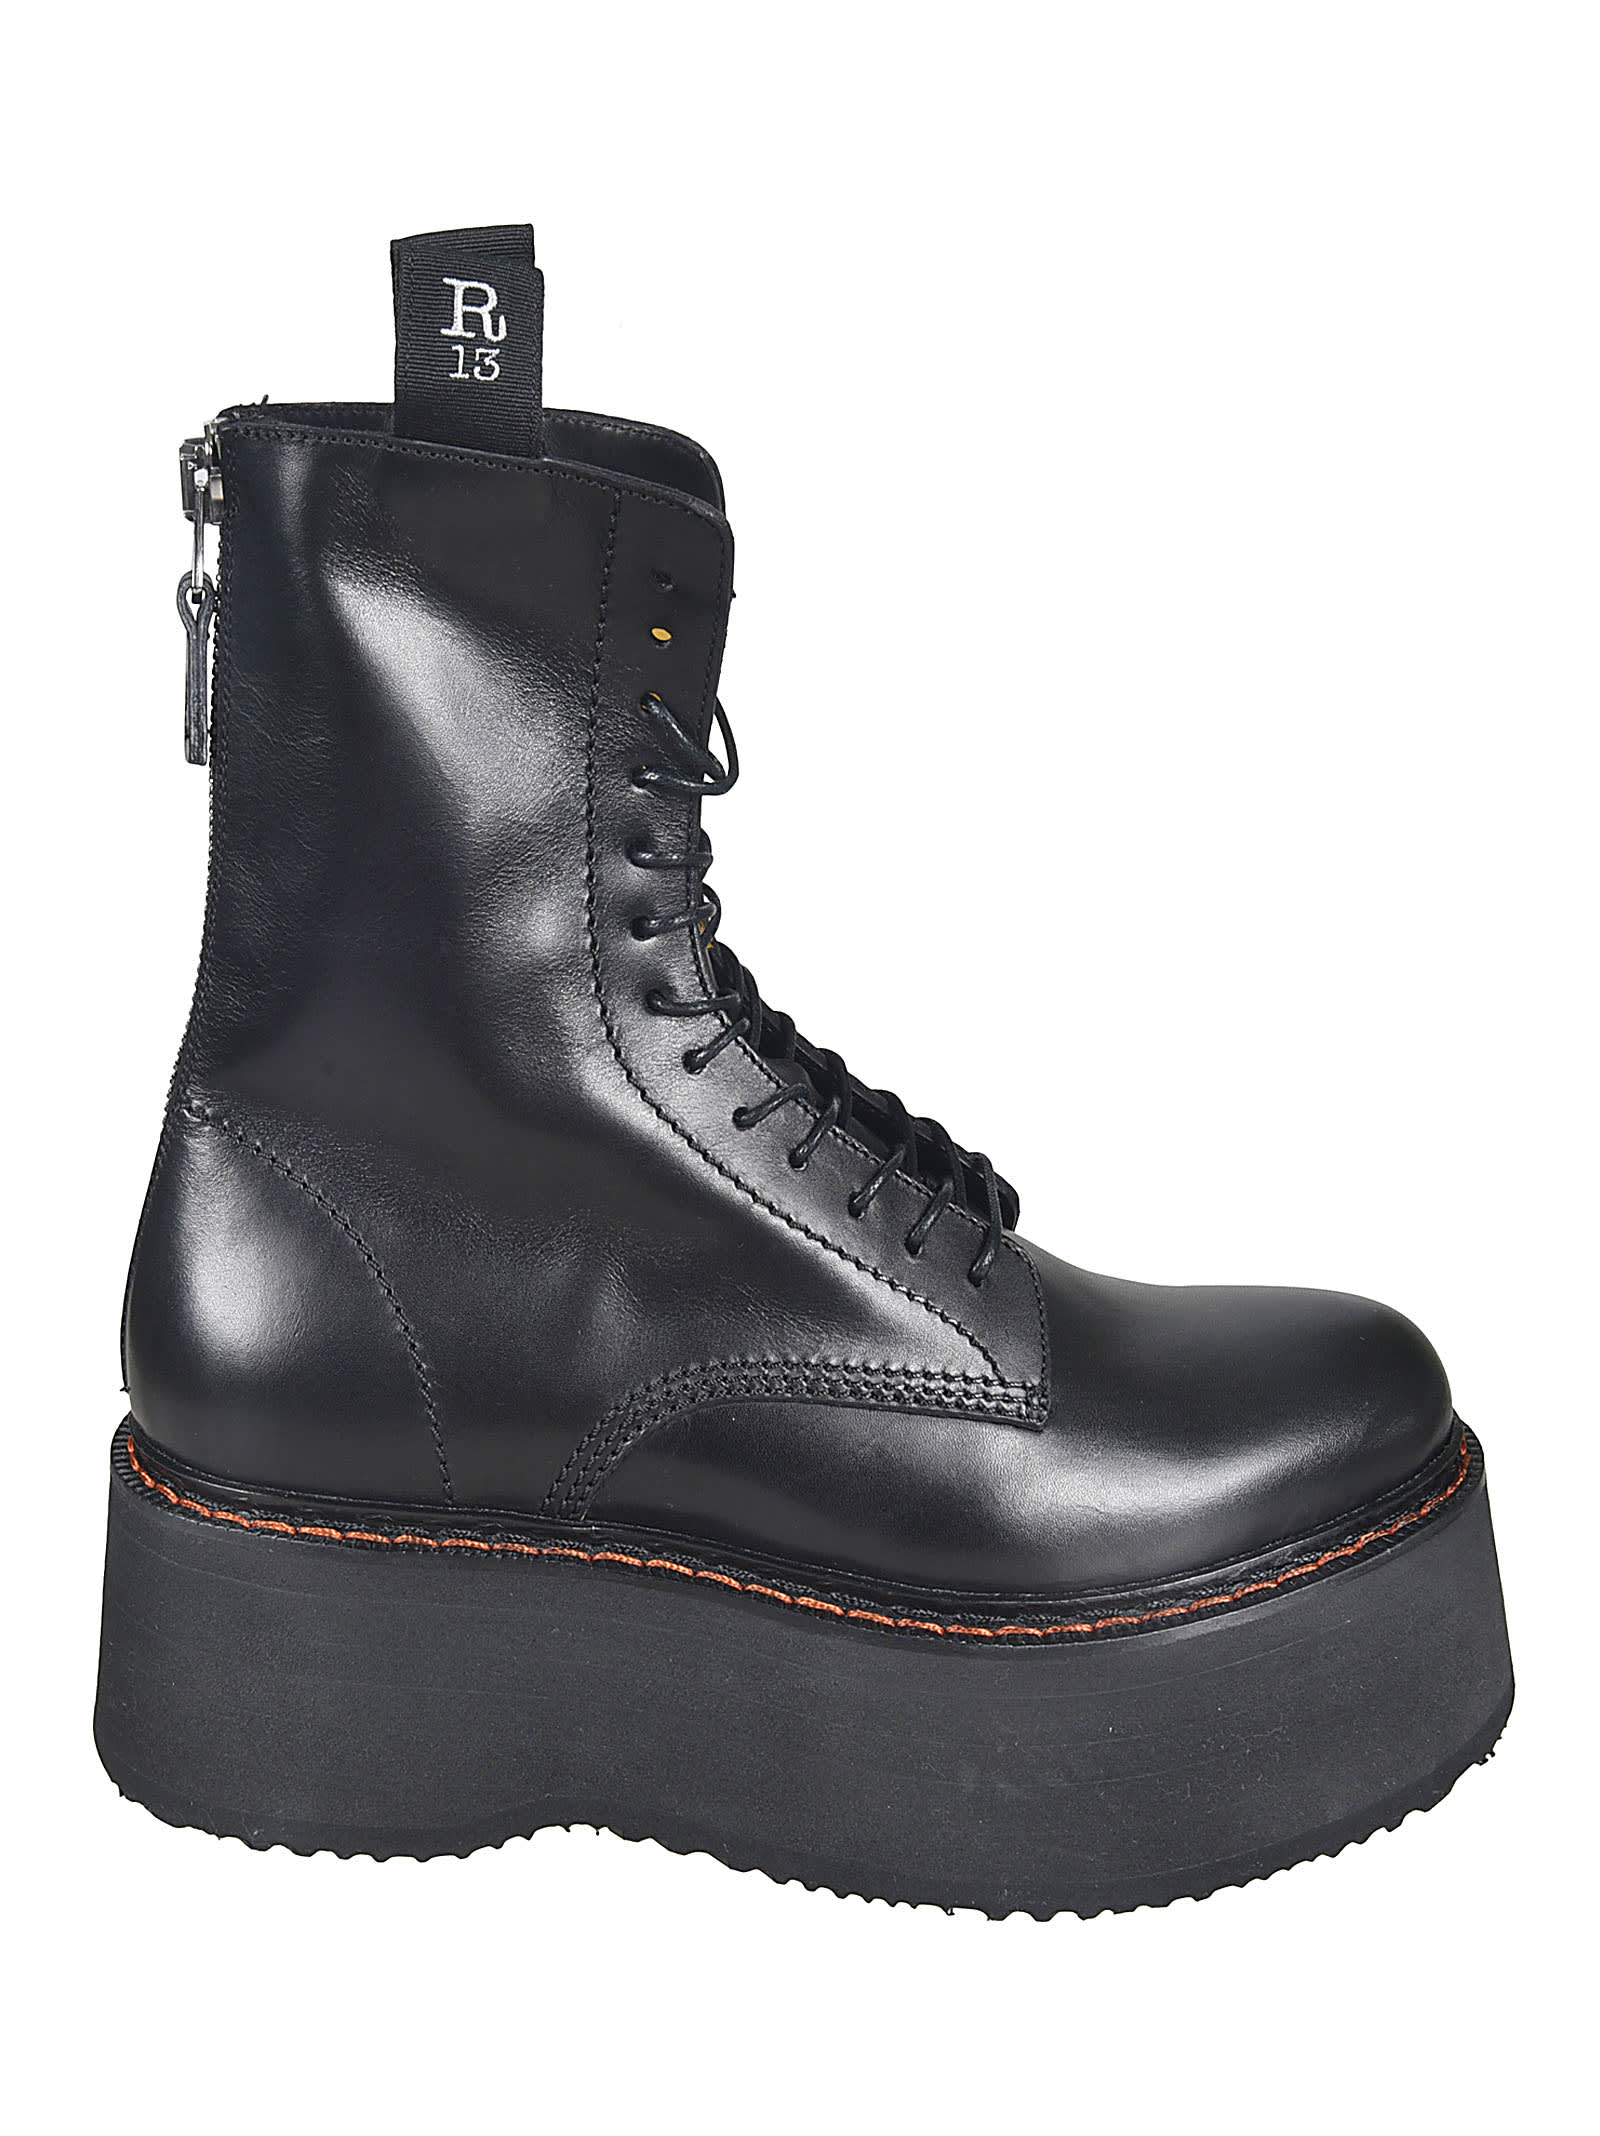 R13 REAR ZIPPED LACE-UP BOOTS